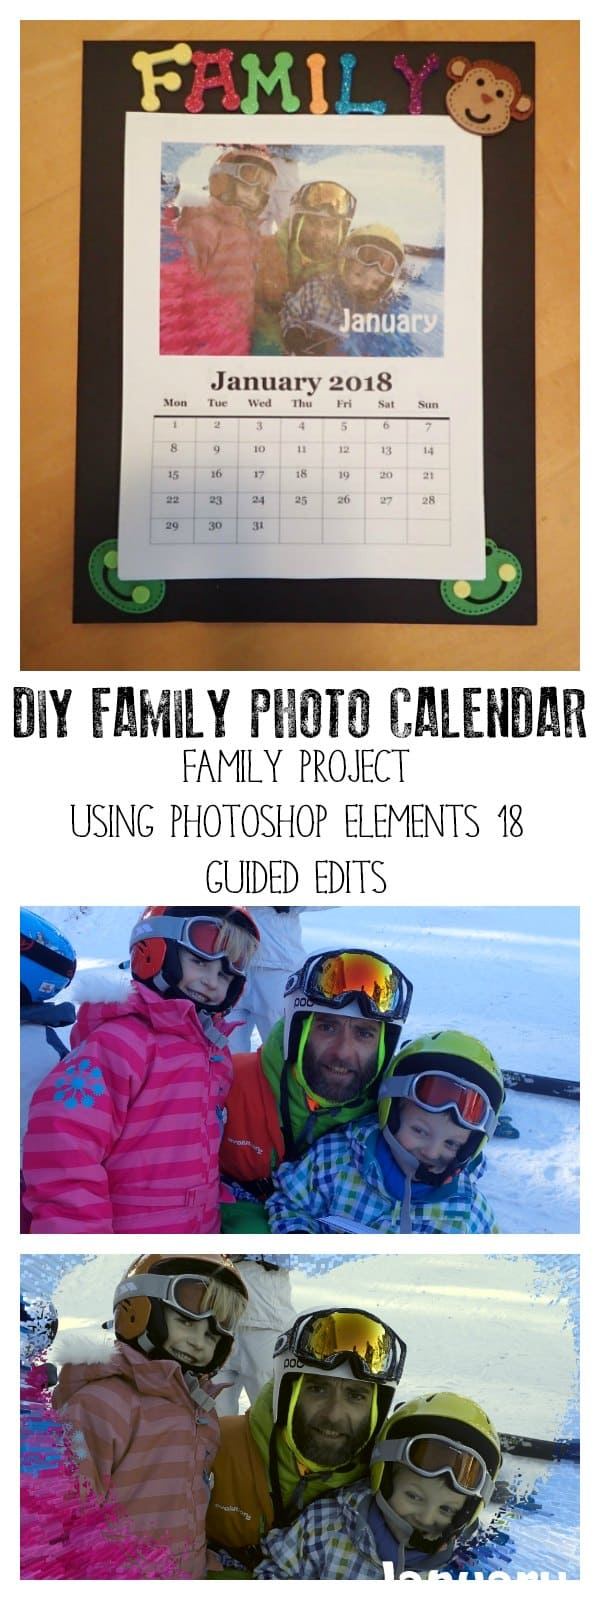 Fun photo project for families to make a DIY Family Photo Calendar using Adobe Photoshop Elements 2018.